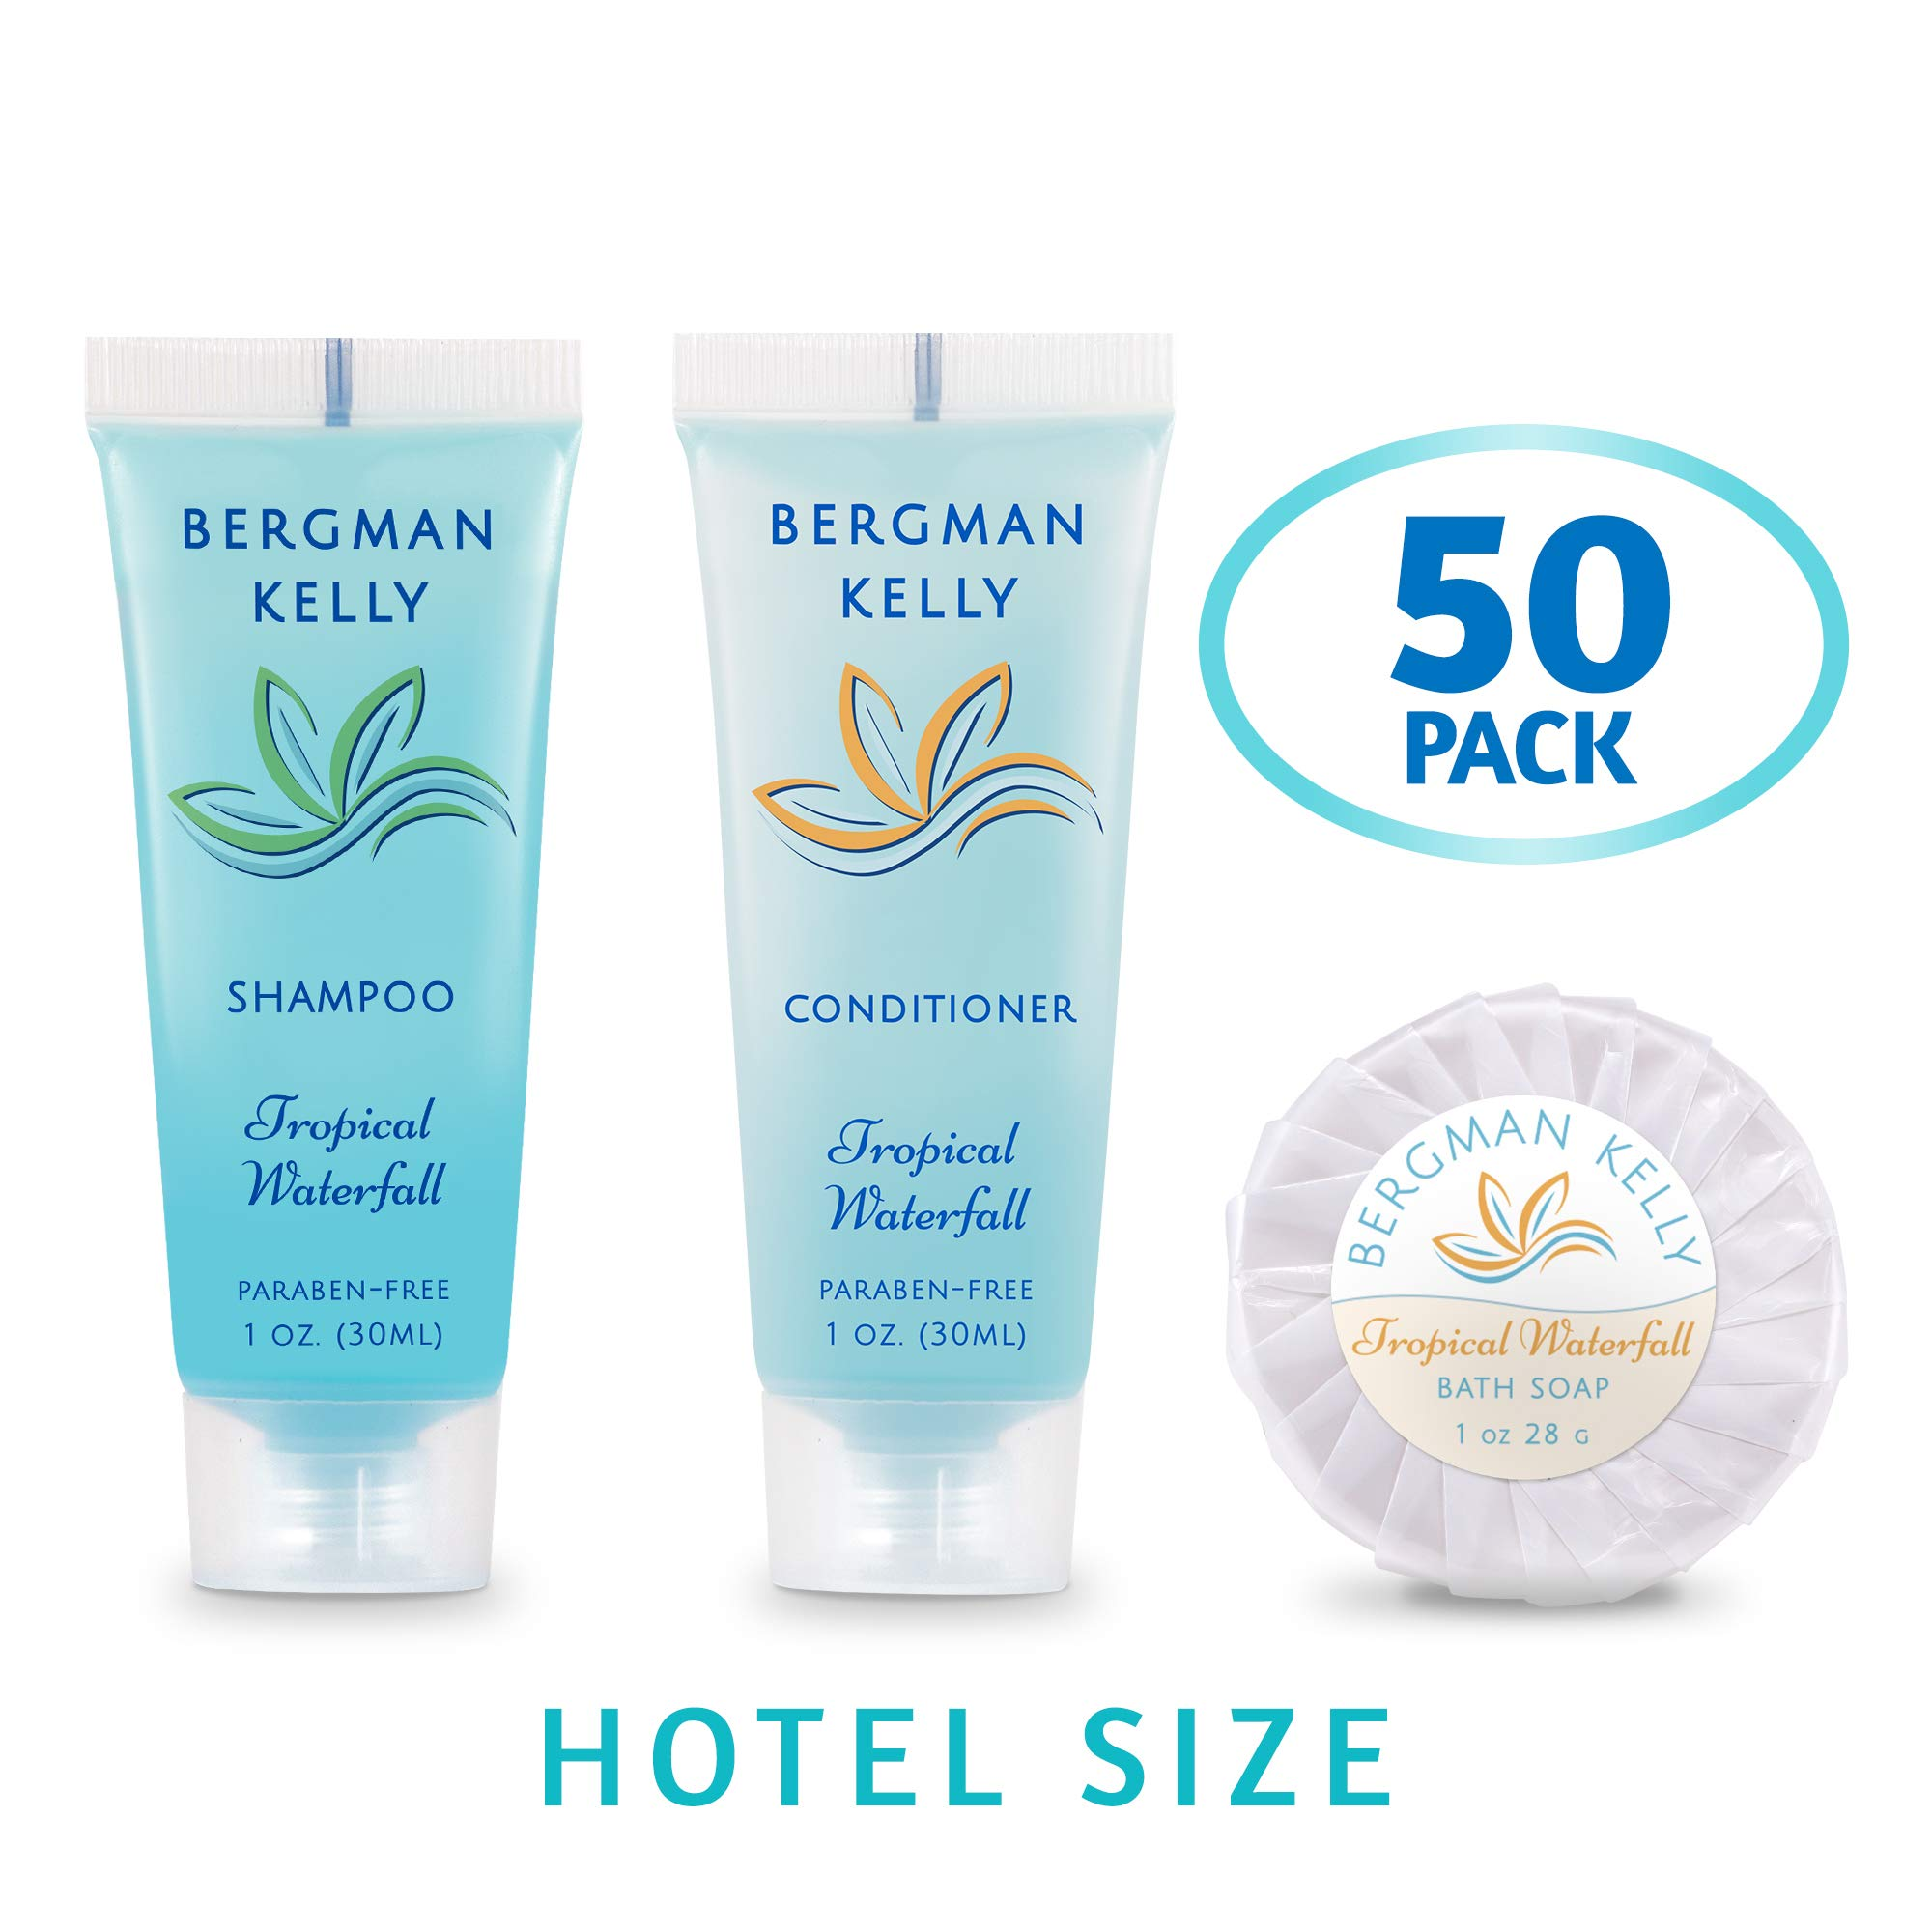 BERGMAN KELLY Round Soap Bars, Shampoo & Conditioner 3-Piece Set (1 oz each, 150 pcs, Tropical Waterfall), Delight Your Guests with Invigorating & Refreshing Bulk Travel Size Hotel Toiletries by BERGMAN KELLY